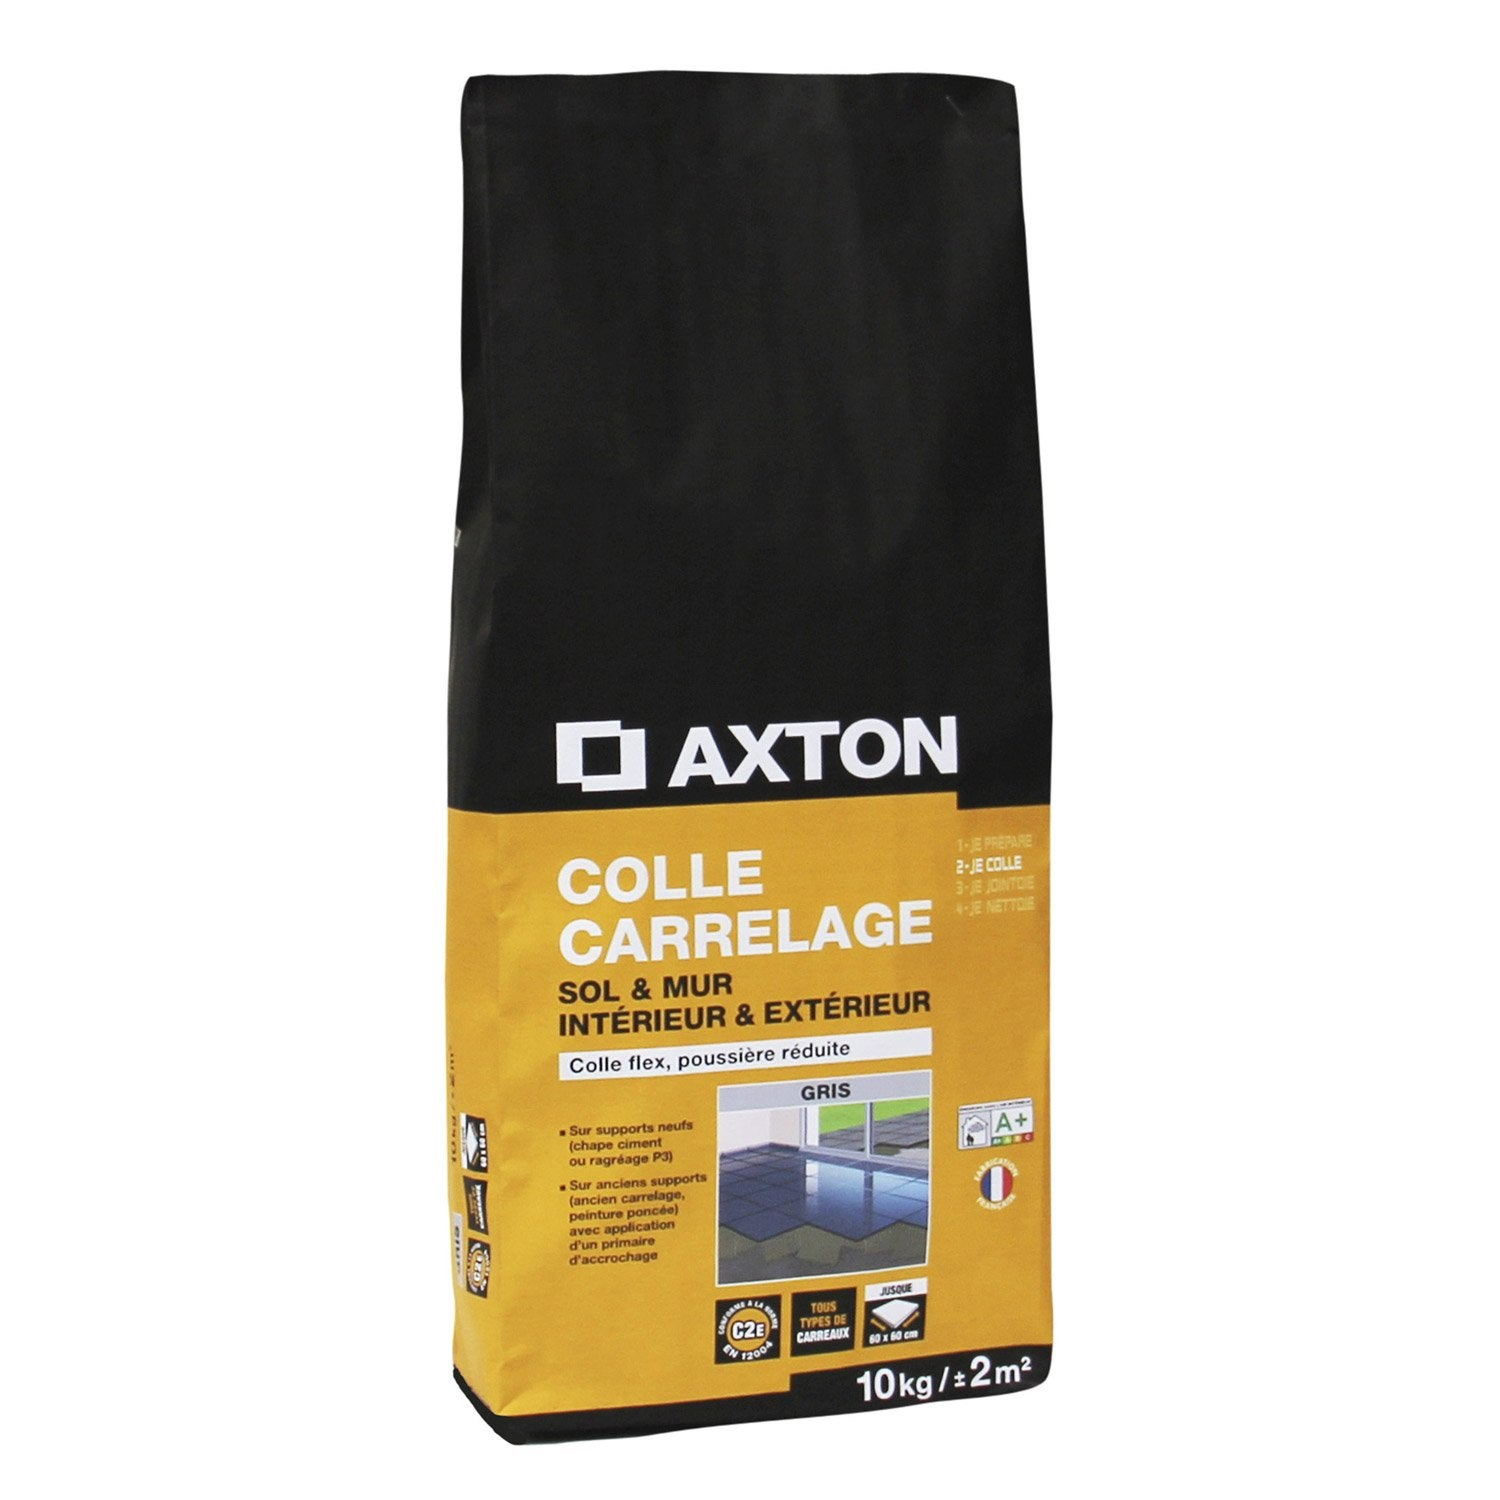 Mortier colle flexible pour carrelage mur et sol 10 kg - Colle carrelage flex ...